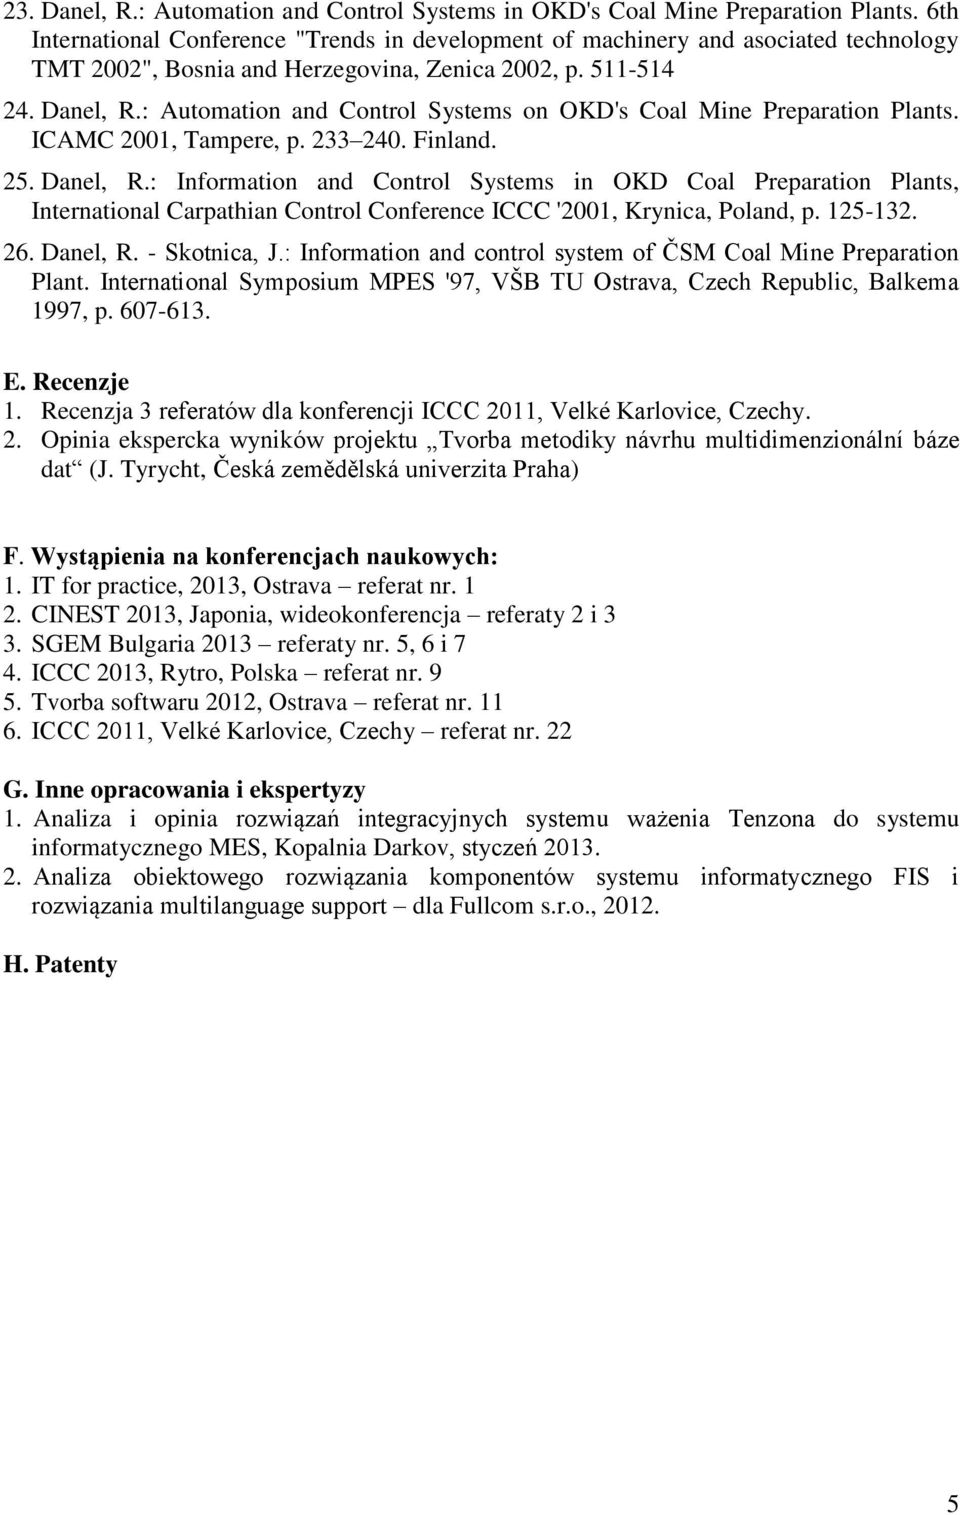 : Automation and Control Systems on OKD's Coal Mine Preparation Plants. ICAMC 2001, Tampere, p. 233 240. Finland. 25. Danel, R.